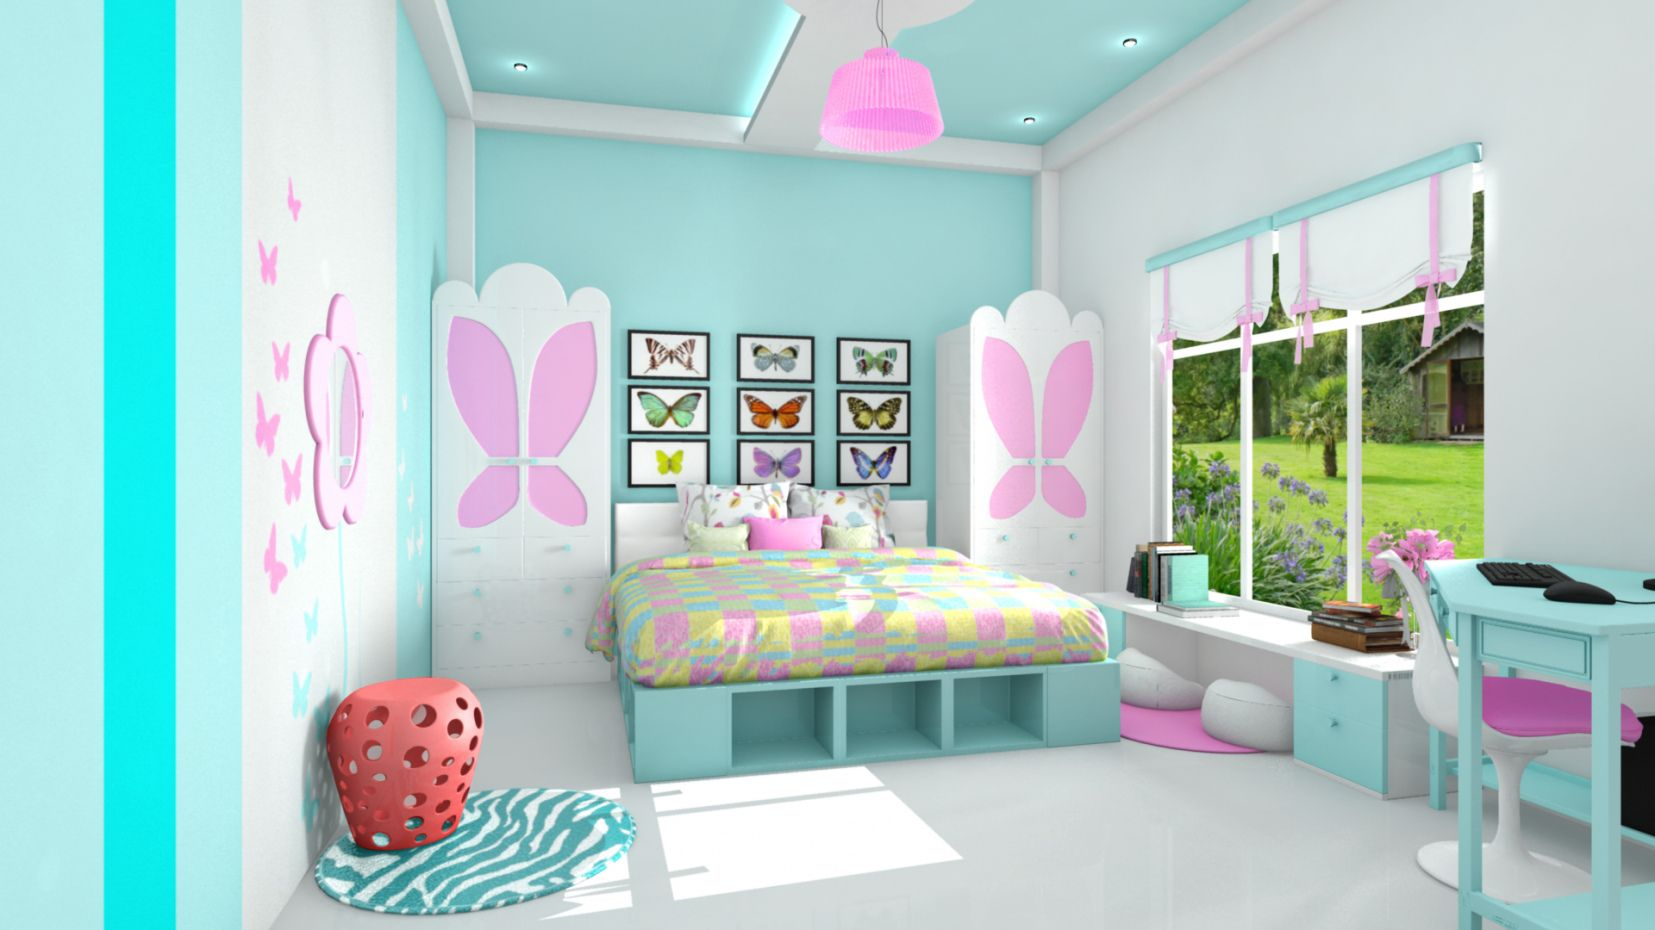 Ten Year Old Girl Bedroom Look With The Butterfly Look.